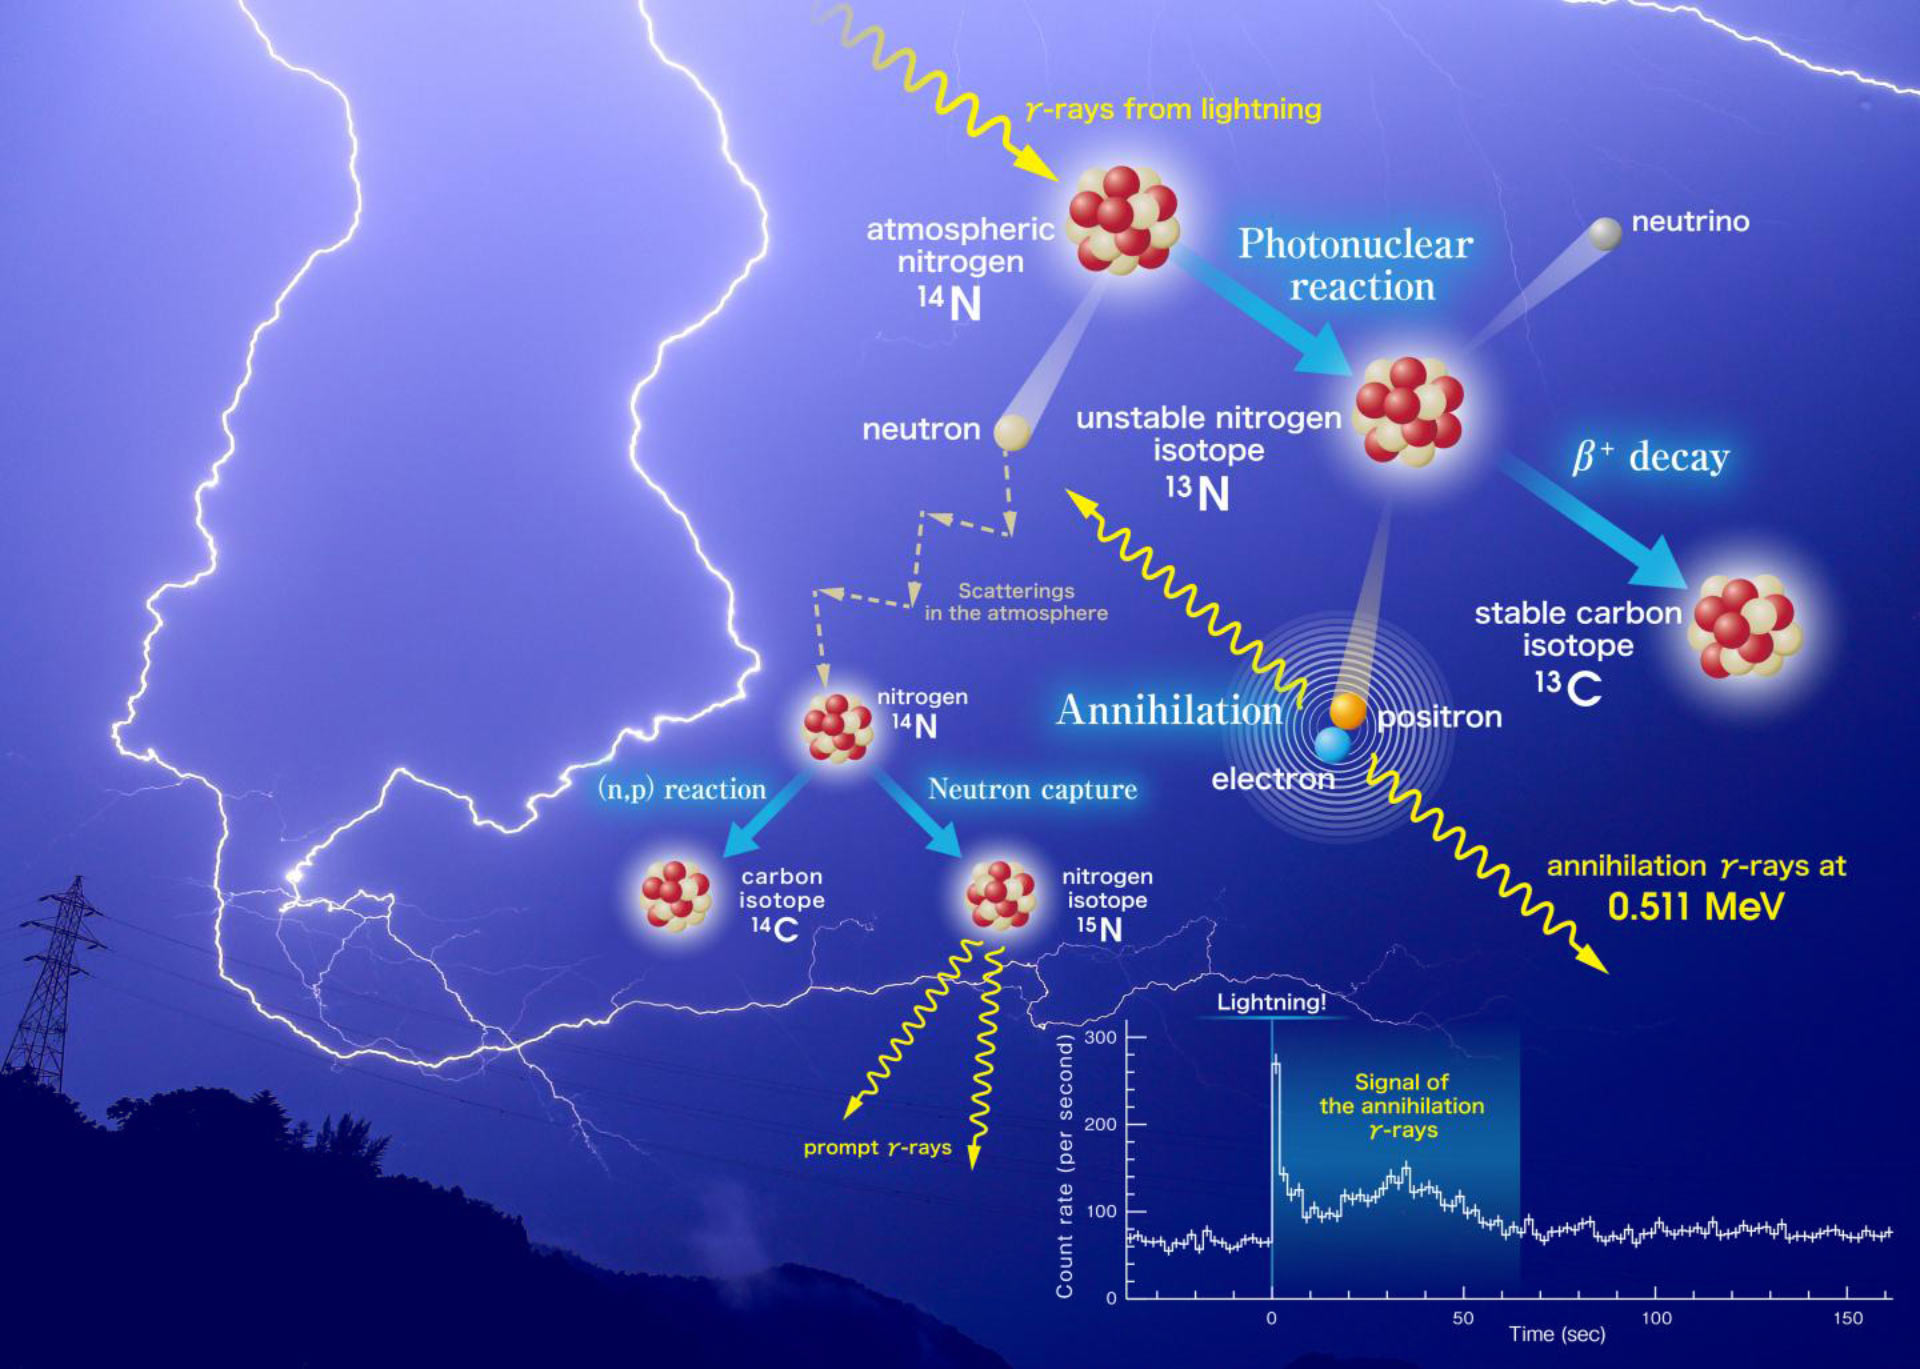 Lightning Strikes Produce Antimatter Particles in Earths